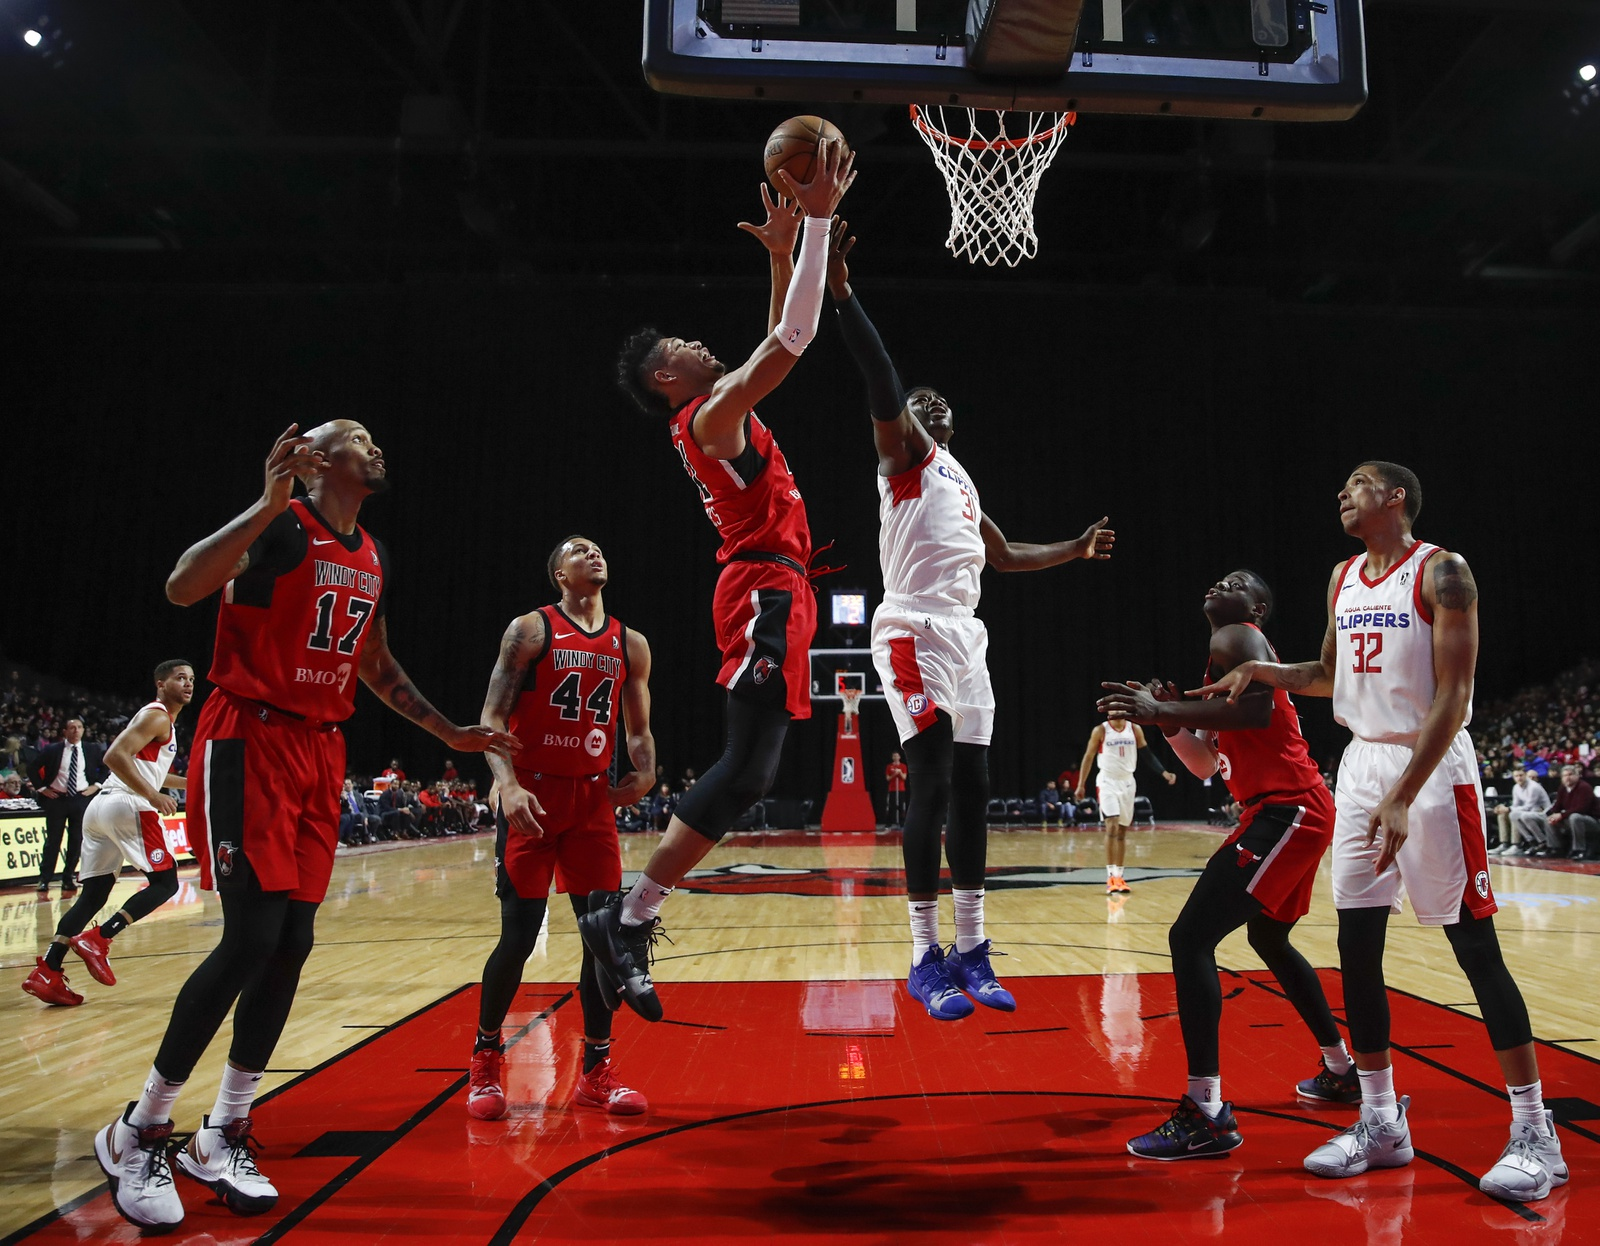 Kaiser Gates #21 of the Windy City Bulls battles for the ball with Angel Delgado #31 of the Agua Caliente Clippers during the first half of an NBA G-League game on February 20, 2019 at Sears Centre Arena in Hoffman Estates, Illinois.